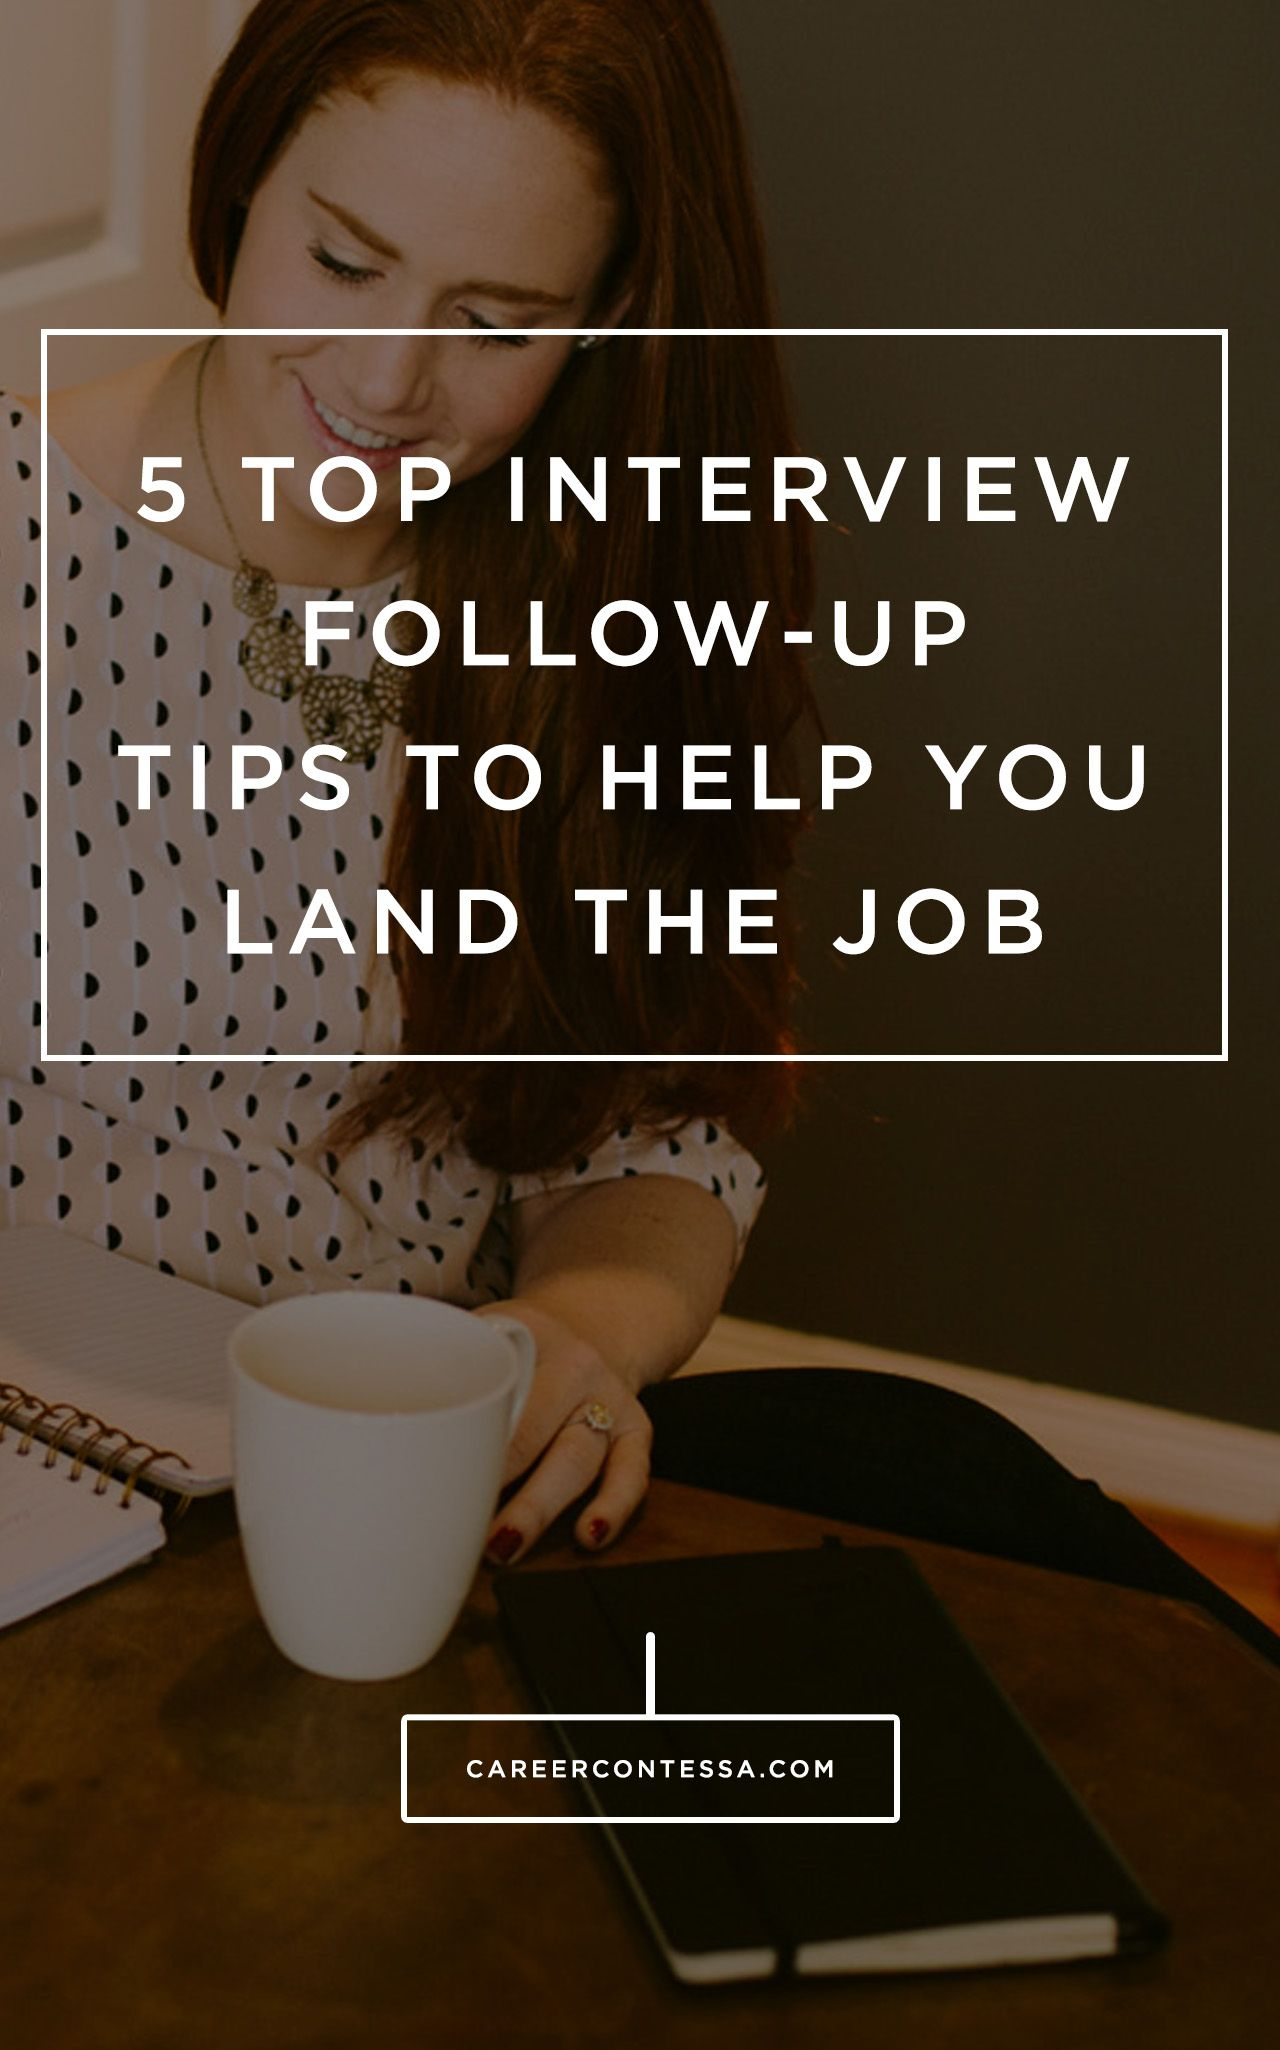 Bureau Interviewer Professionnel The 5 Top Interview Follow Up Tips To Land The Job From A